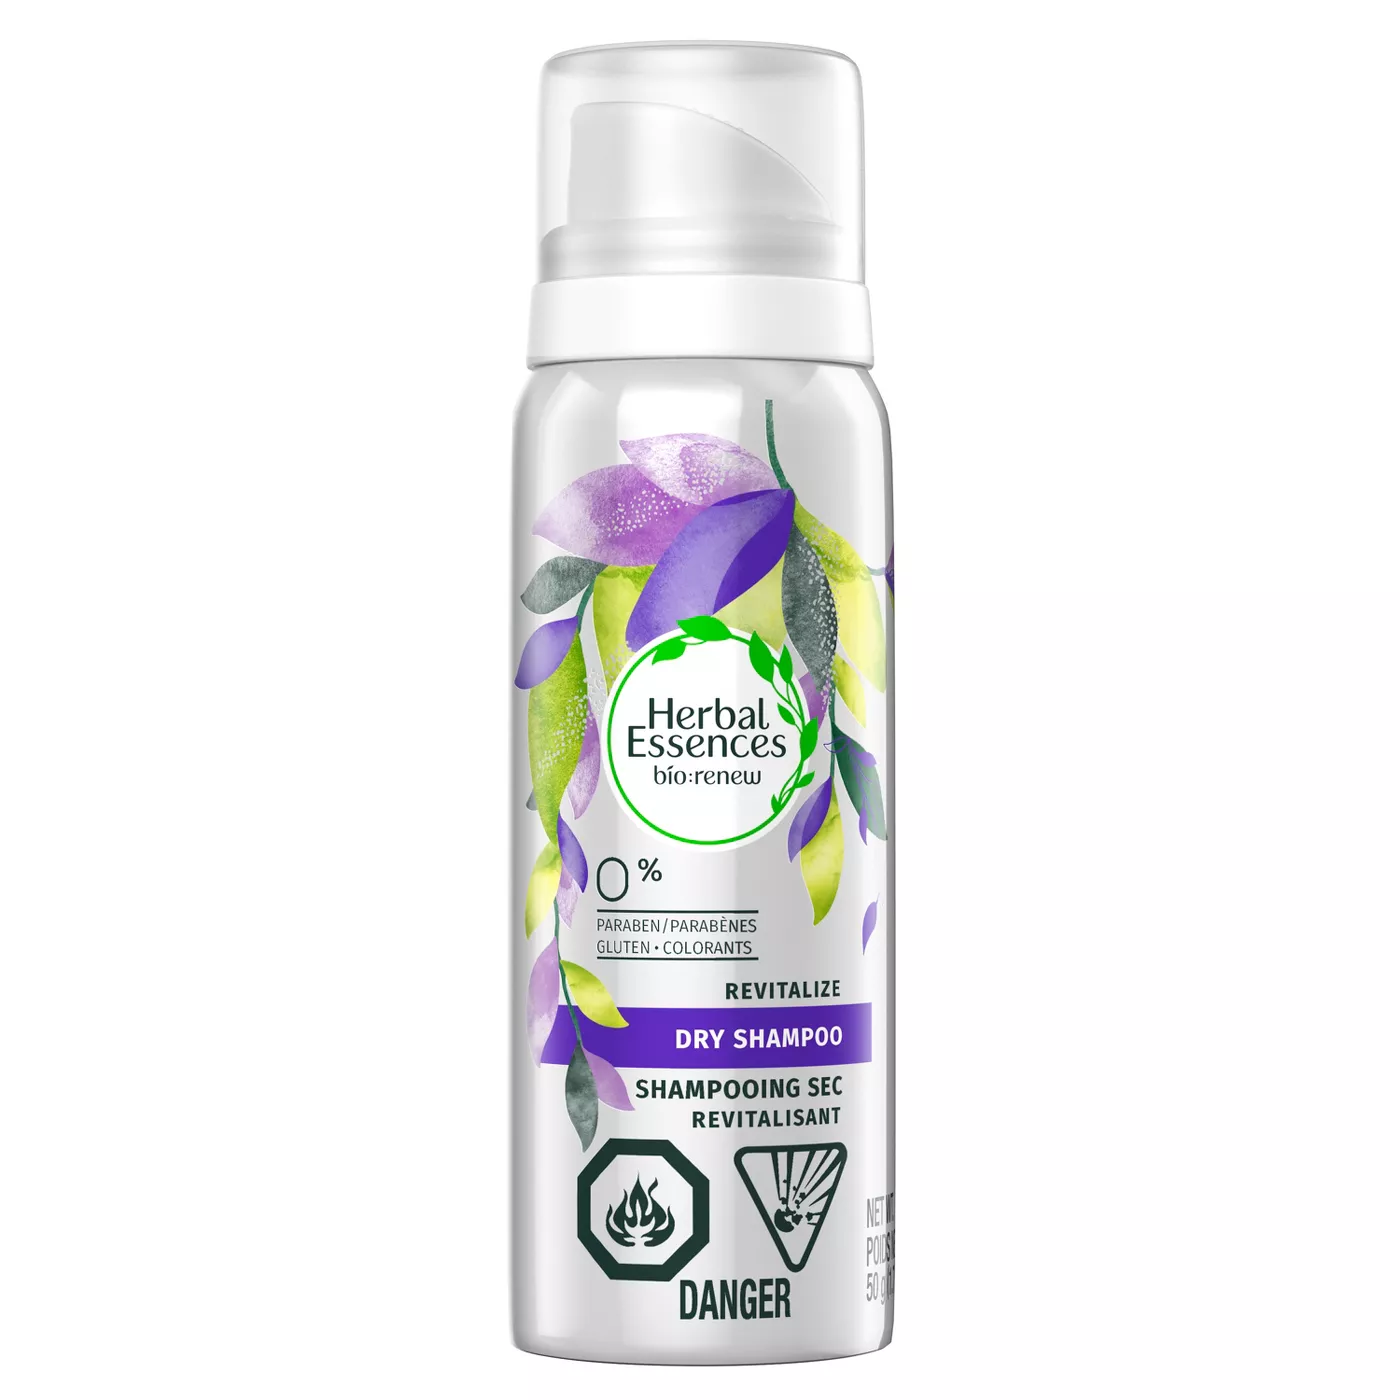 Bio_Renew_Revitalize_Cucumber___Green_Tea_Dry_Shampoo_From_Herbal_Essences_4.png